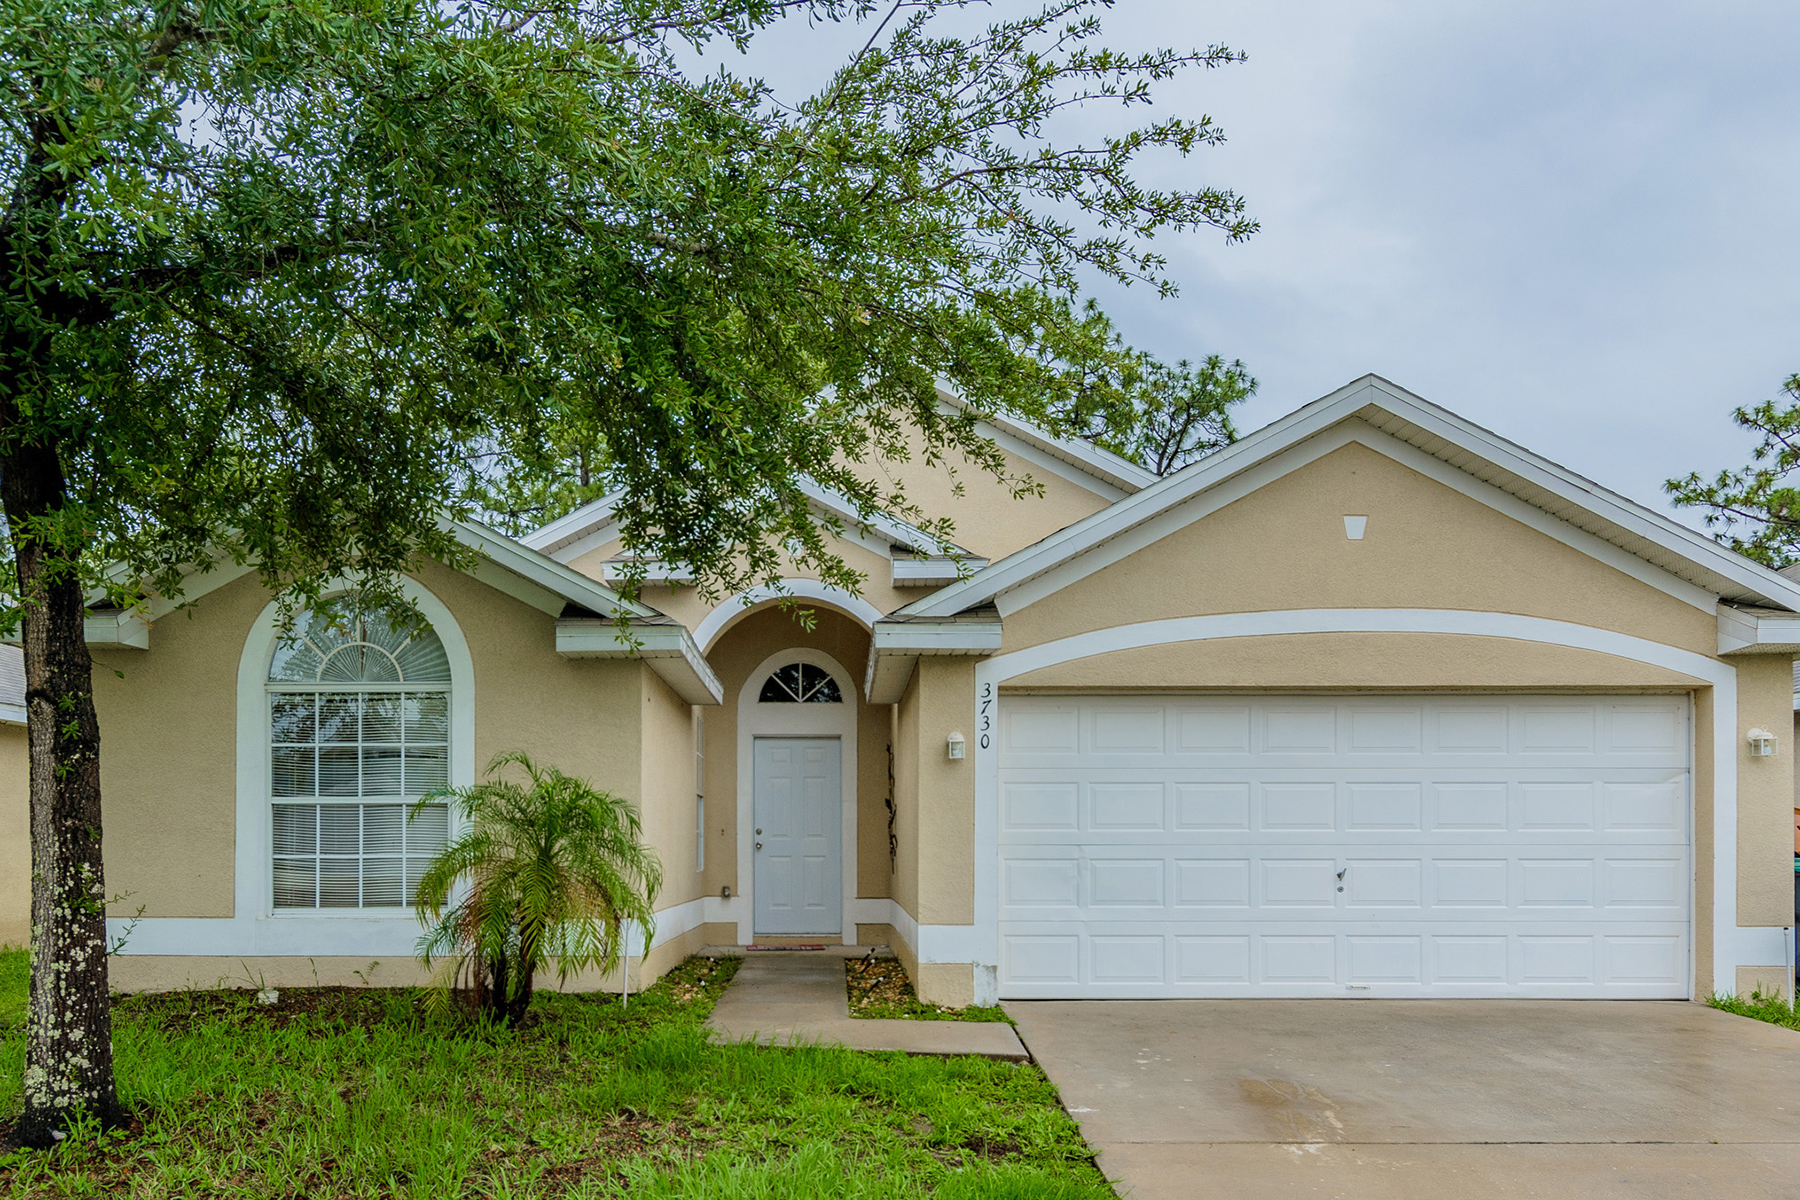 Single Family Home for Sale at 3730 Benson Park Blvd , Orlando, FL 32829 3730 Benson Park Blvd, Orlando, Florida 32829 United States